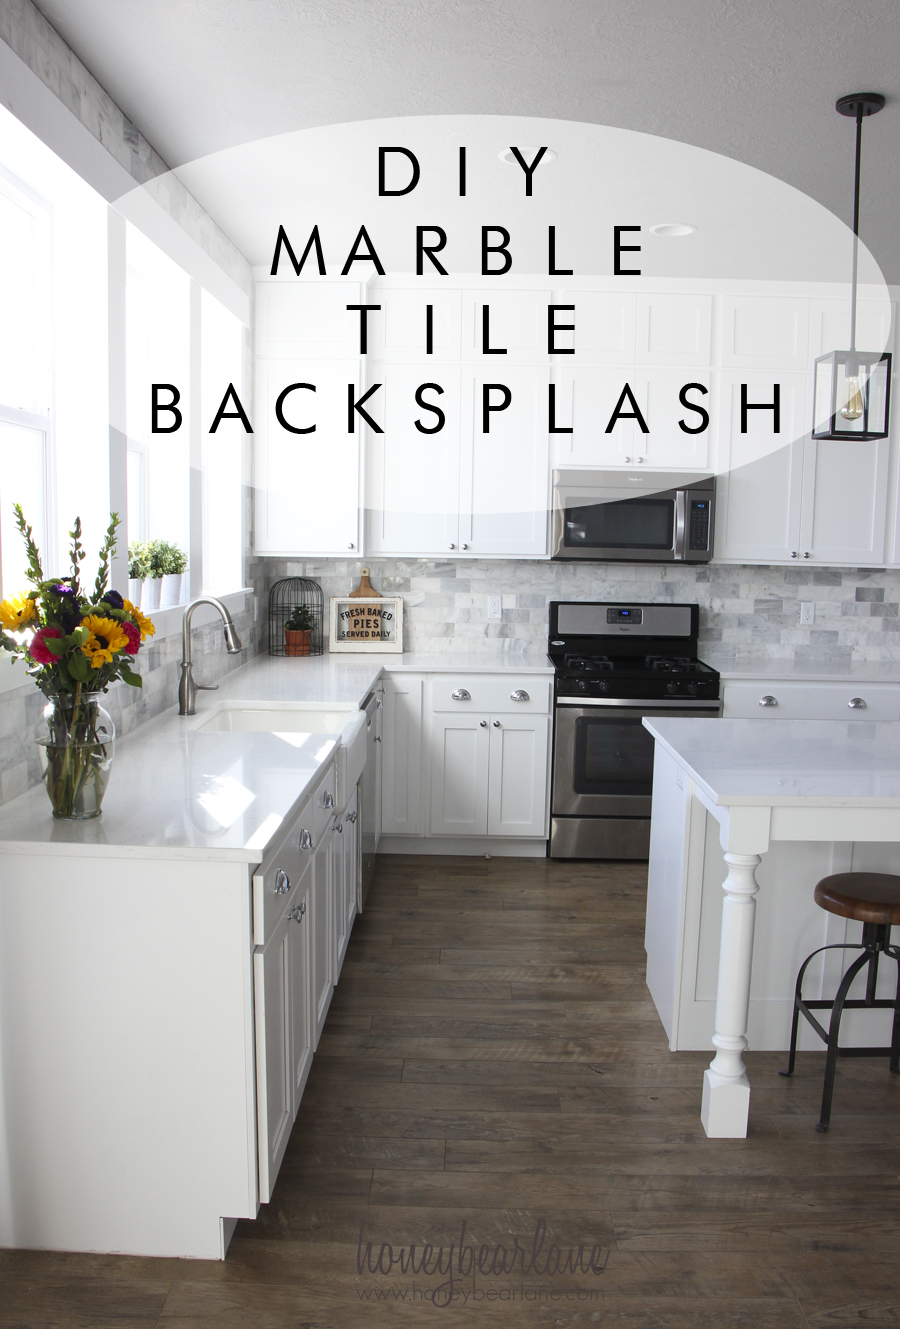 How Much To Install Backsplash how do you choose the perfect kitchen tile backsplash there are so many decisions And Once The Backsplash Was Done The Pendant Lights Just Seemed To Match So Much Better I Love It